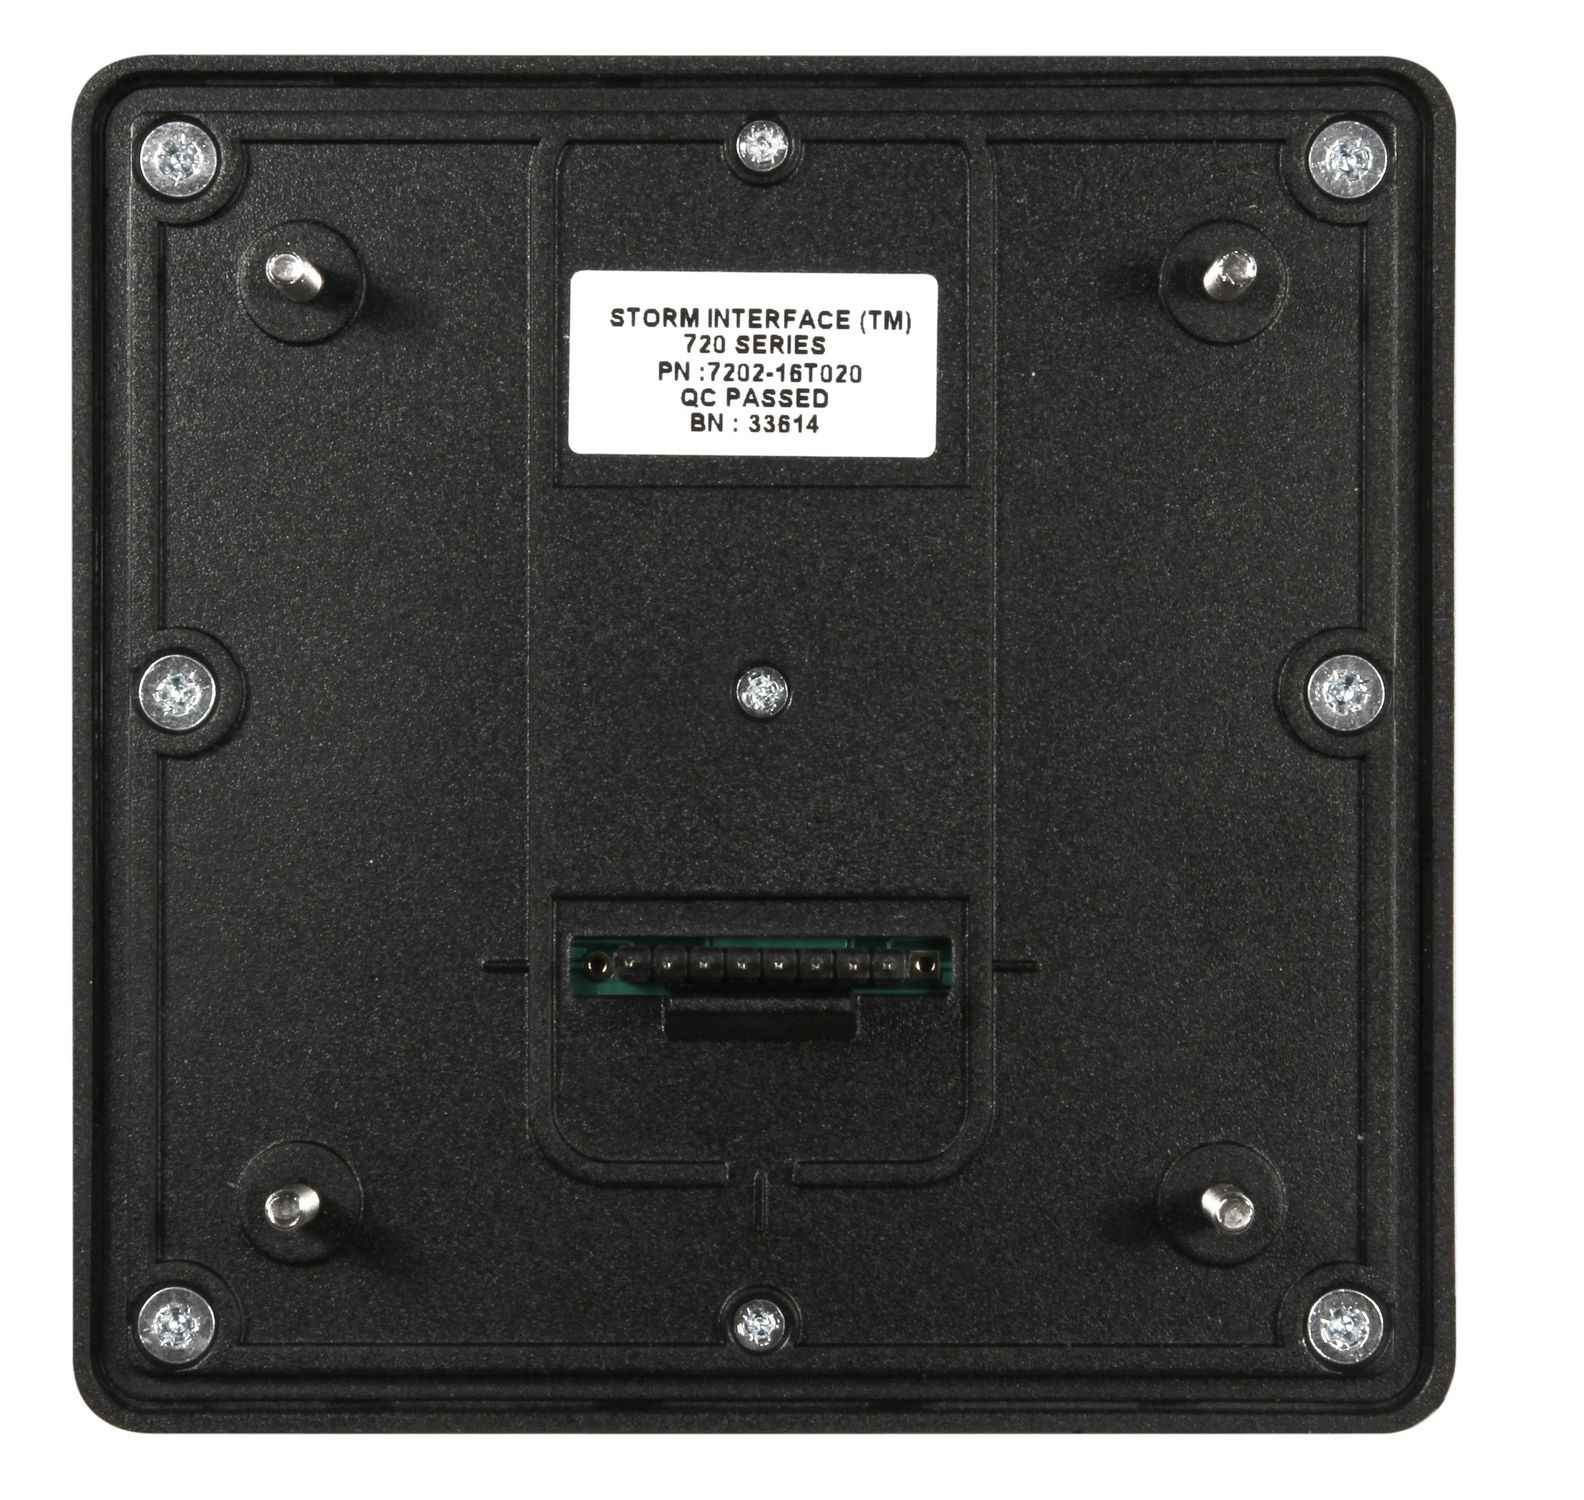 16-key keypad / panel-mount / ultra-rugged / USB - 720 BLK SERIES